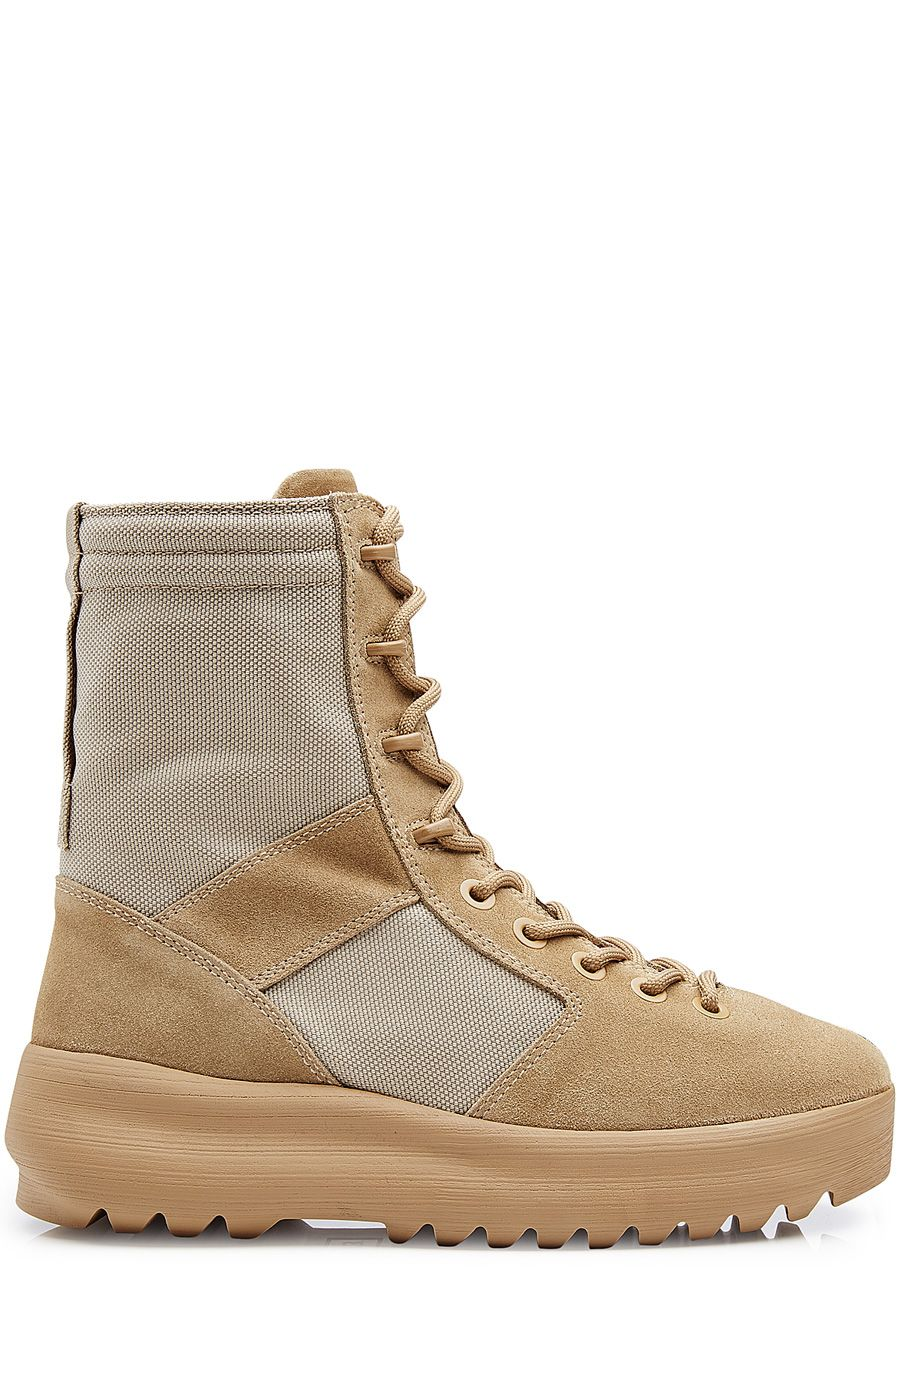 1d8ba2a1318 YEEZY Suede Boots With Mesh.  yeezy  shoes  shoes